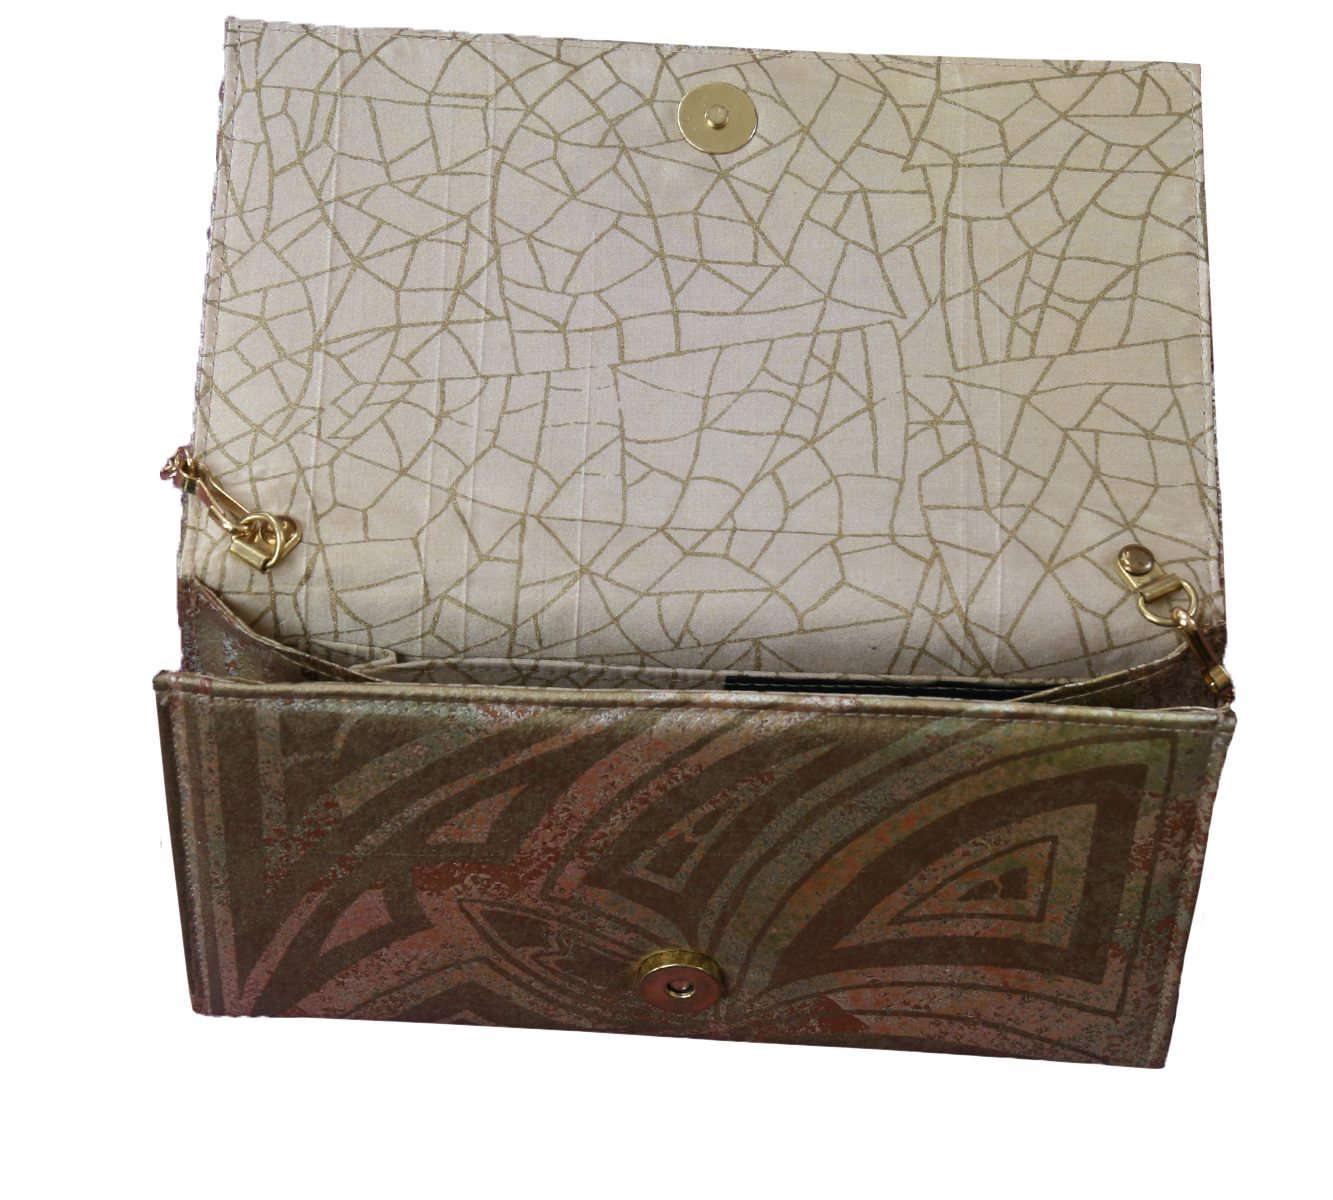 Hand painted gold silk purse-6492